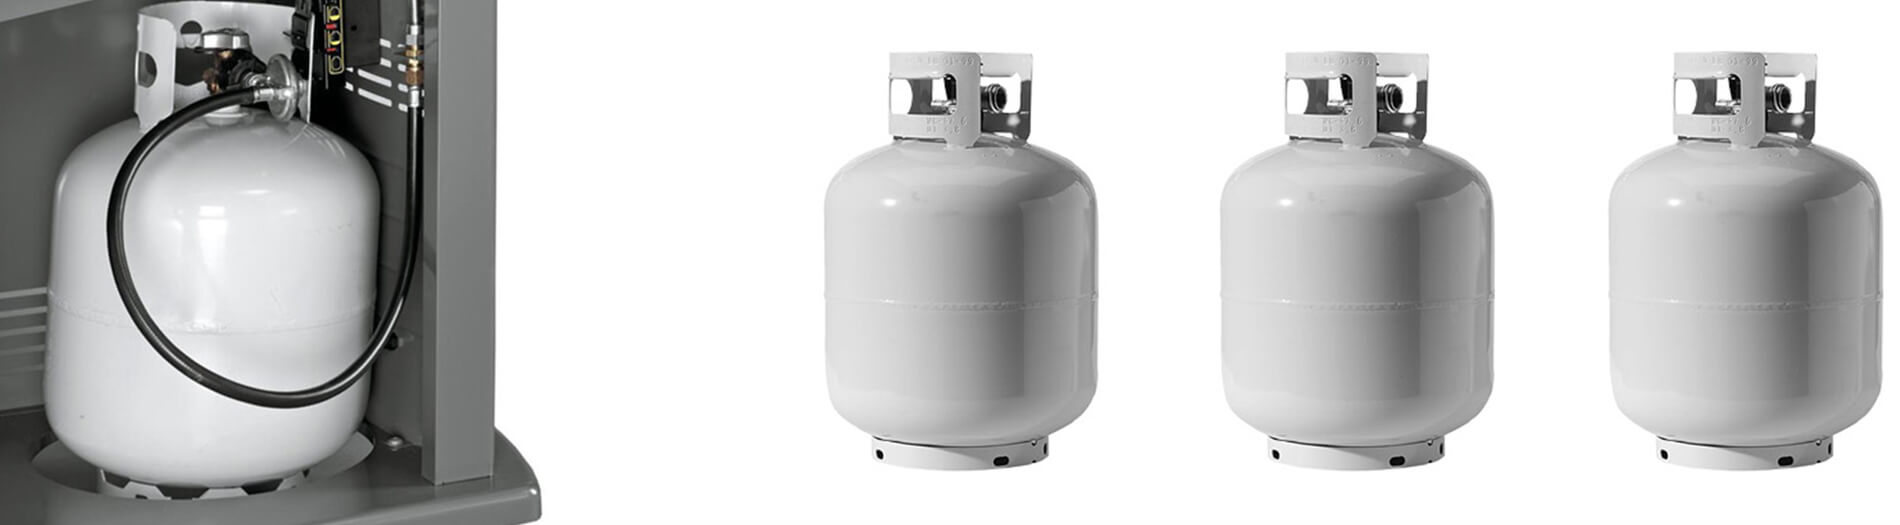 Propane Exchange & Tanks in Chicago and Skokie, IL